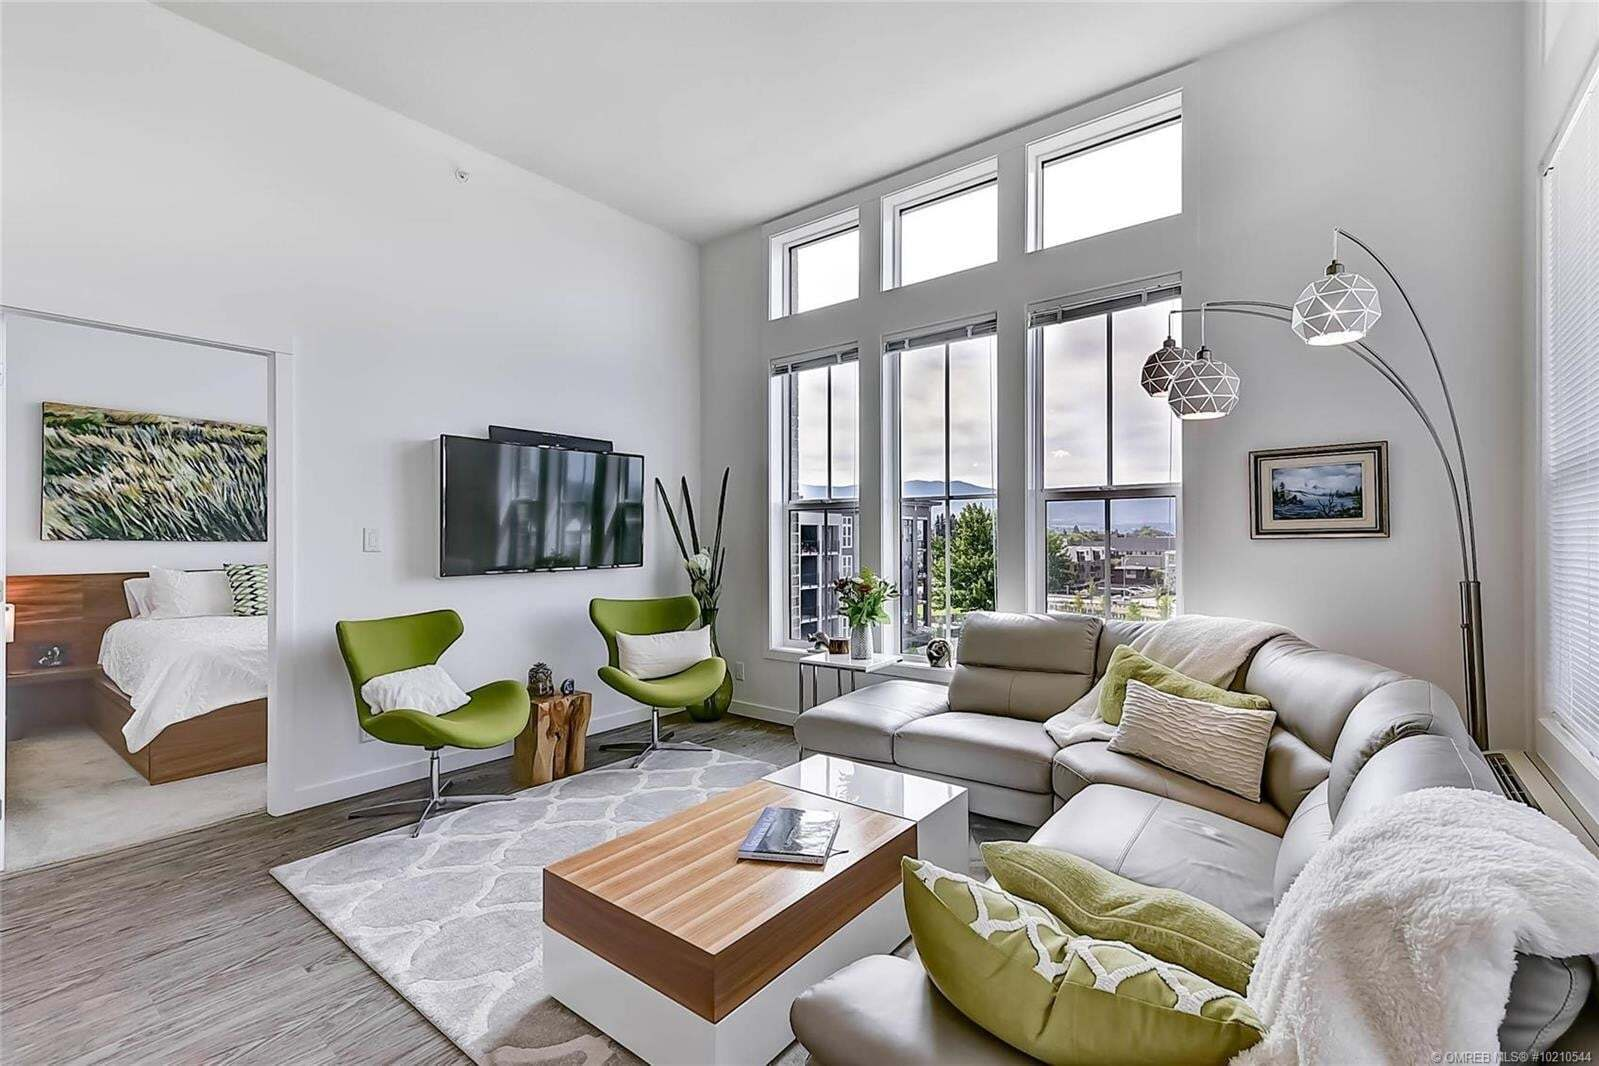 Condo for sale at 1770 Richter St Kelowna British Columbia - MLS: 10210544